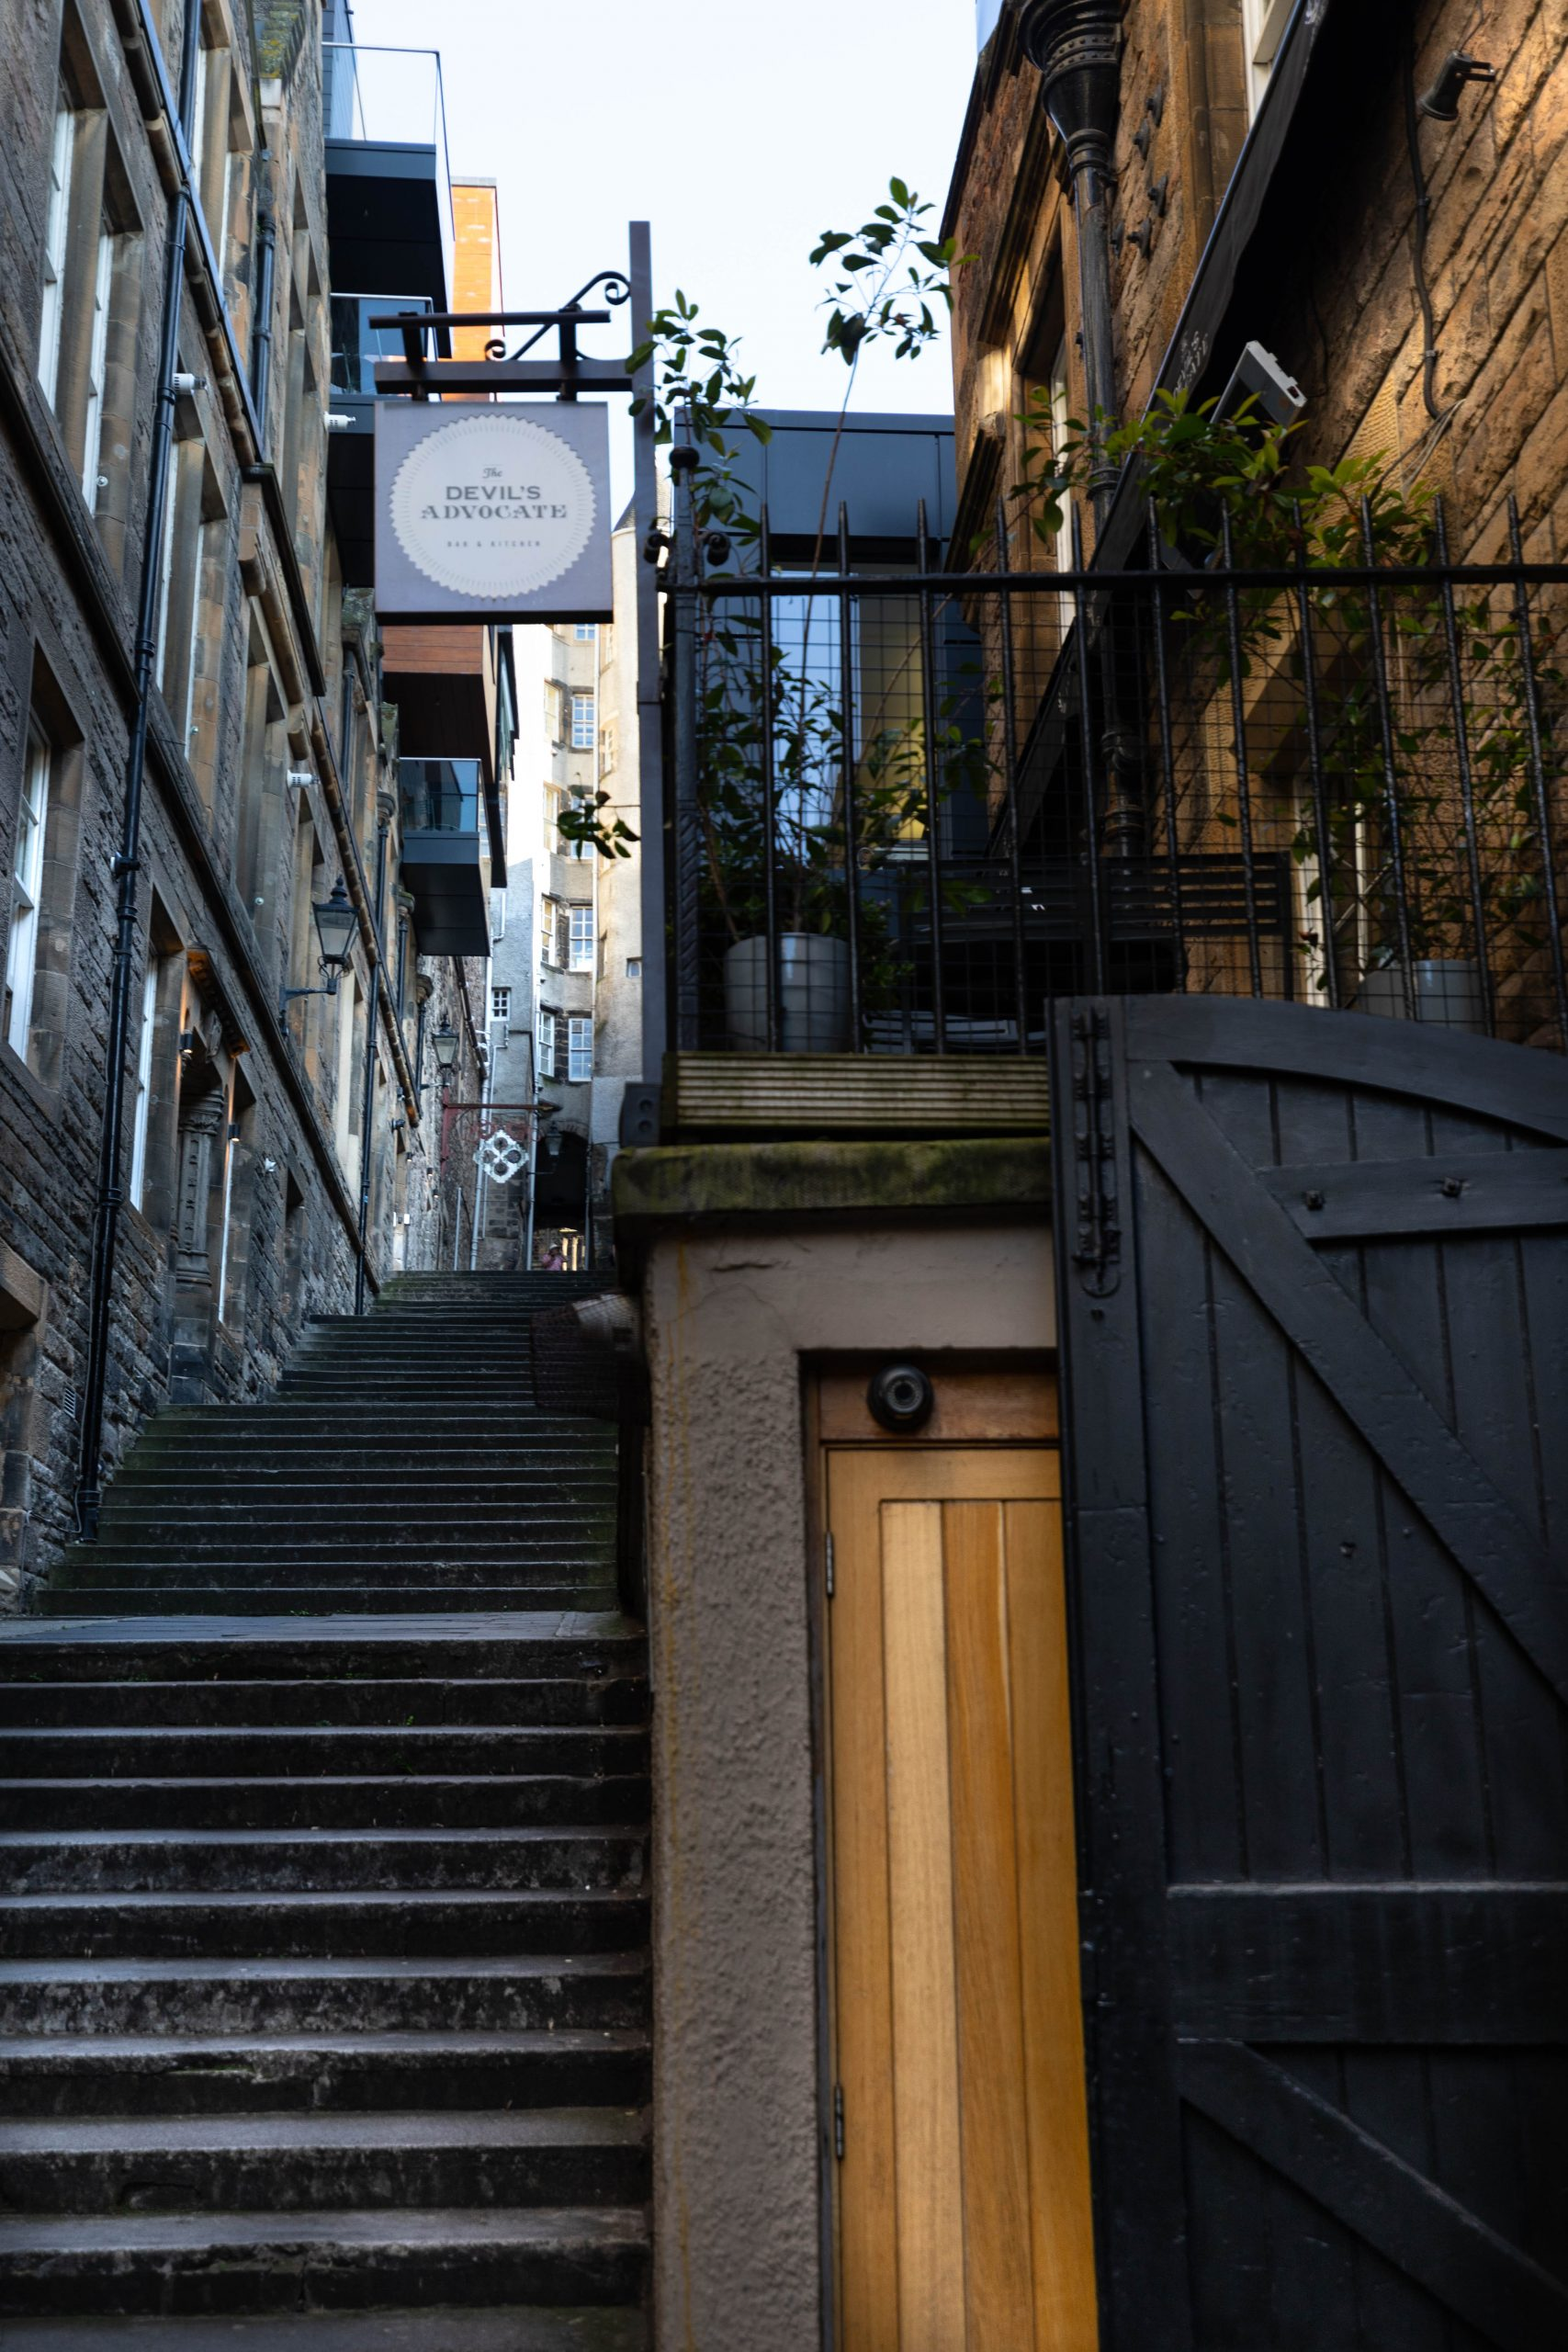 The Devil's Advocate Bar & Kitchen Scottish Pub in Edinburgh Old Town Luxury Travel Guide by Annie Fairfax